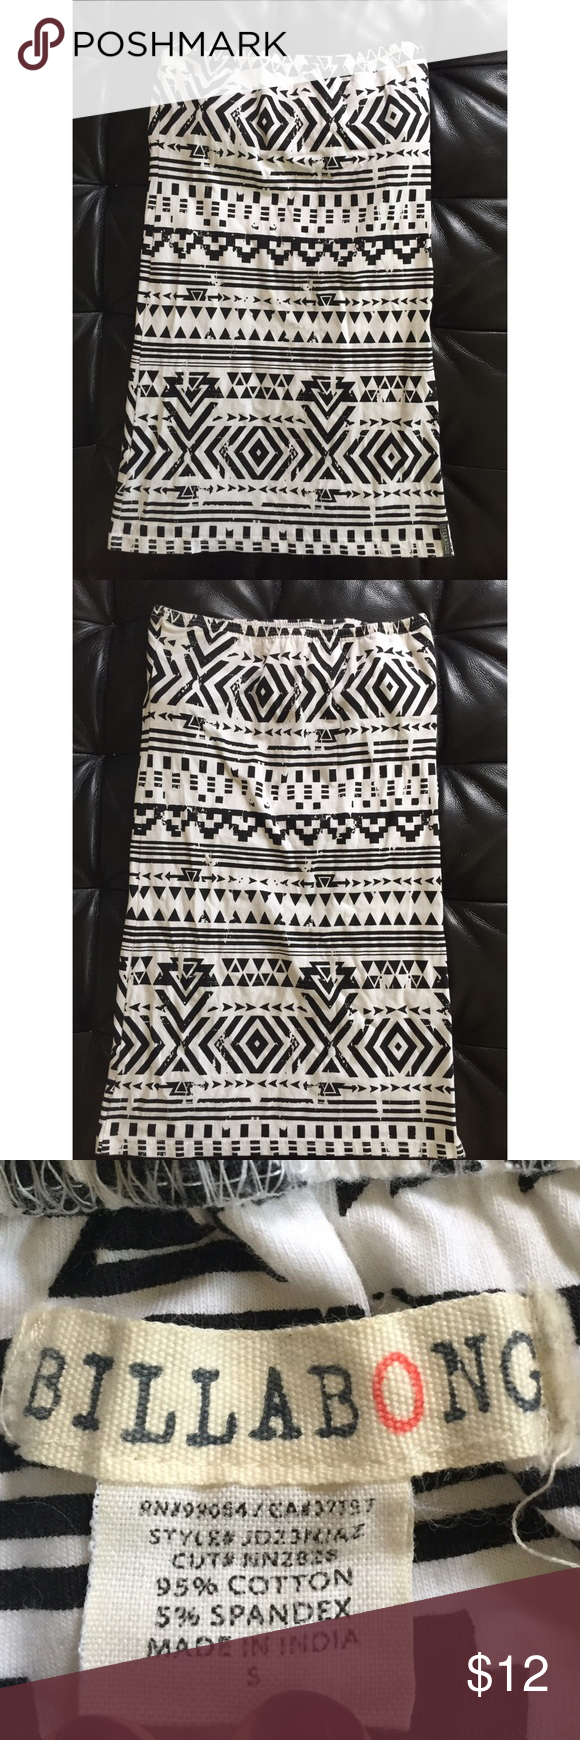 Black and white print dress This form fitting tube top dress is amazing. Black and white pattern makes it stand out! Worn once too big for me. Billabong Dresses Mini